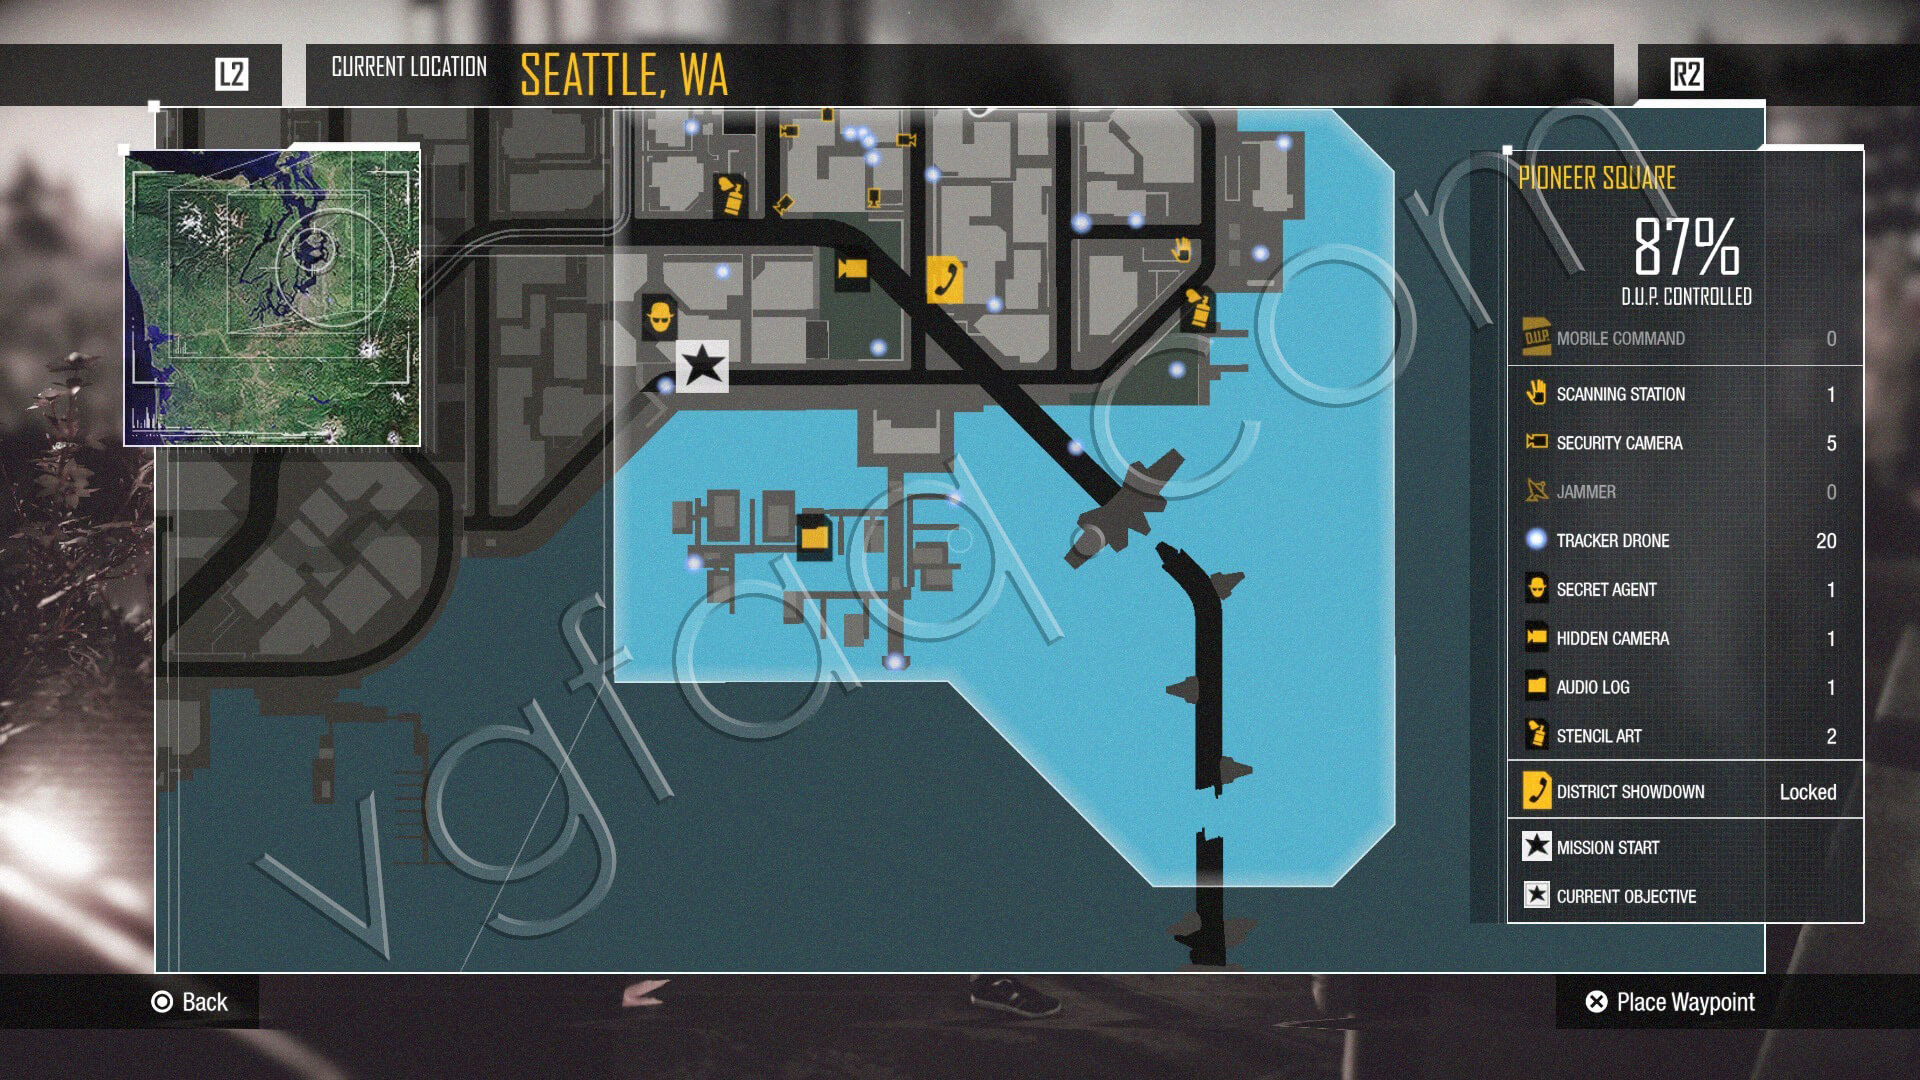 inFamous: Second Son District Showdown Side Missions Guide - Video on infamous oc, infamous first light, infamous son, infamous lovely, infamous black lightning, infamous eugene, infamous augustine, infamous conduits, infamous game, infamous glass, infamous anime, infamous second daughter, infamous kessler, infamous beast, infamous limited edition, infamous good karma, infamous napalm, infamous 1 concept,